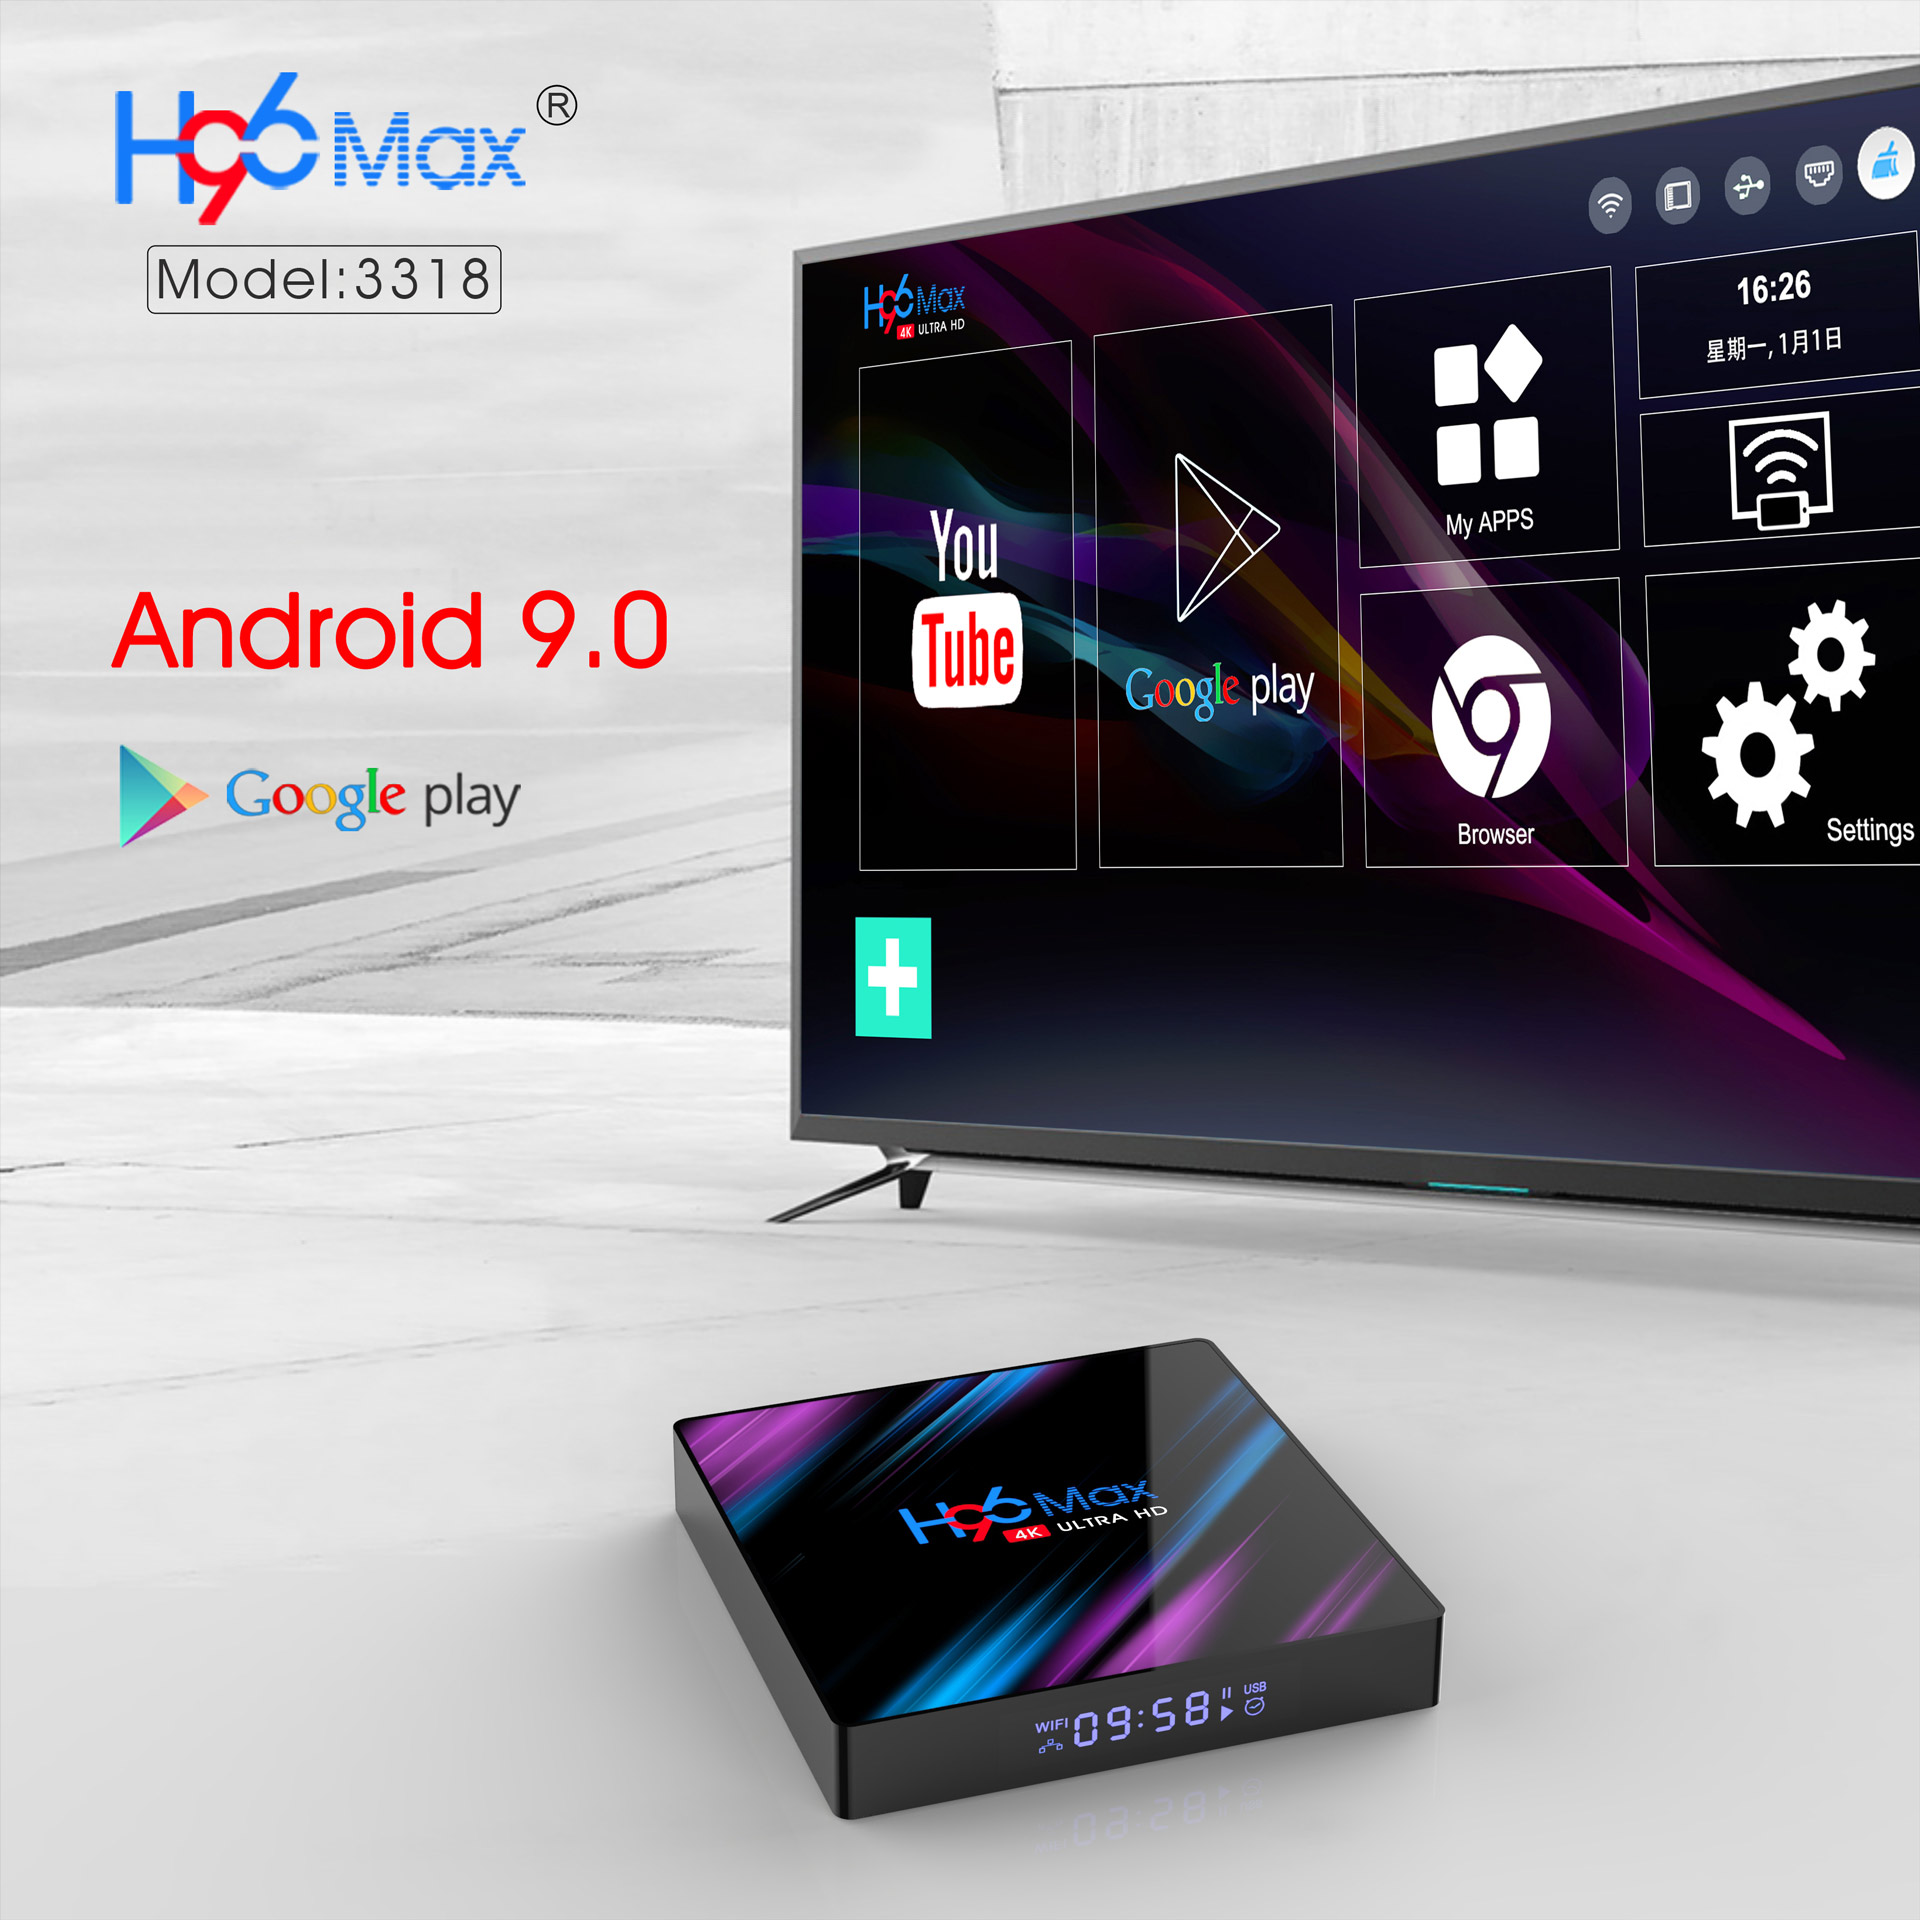 newest android 9.0 tv box 2019